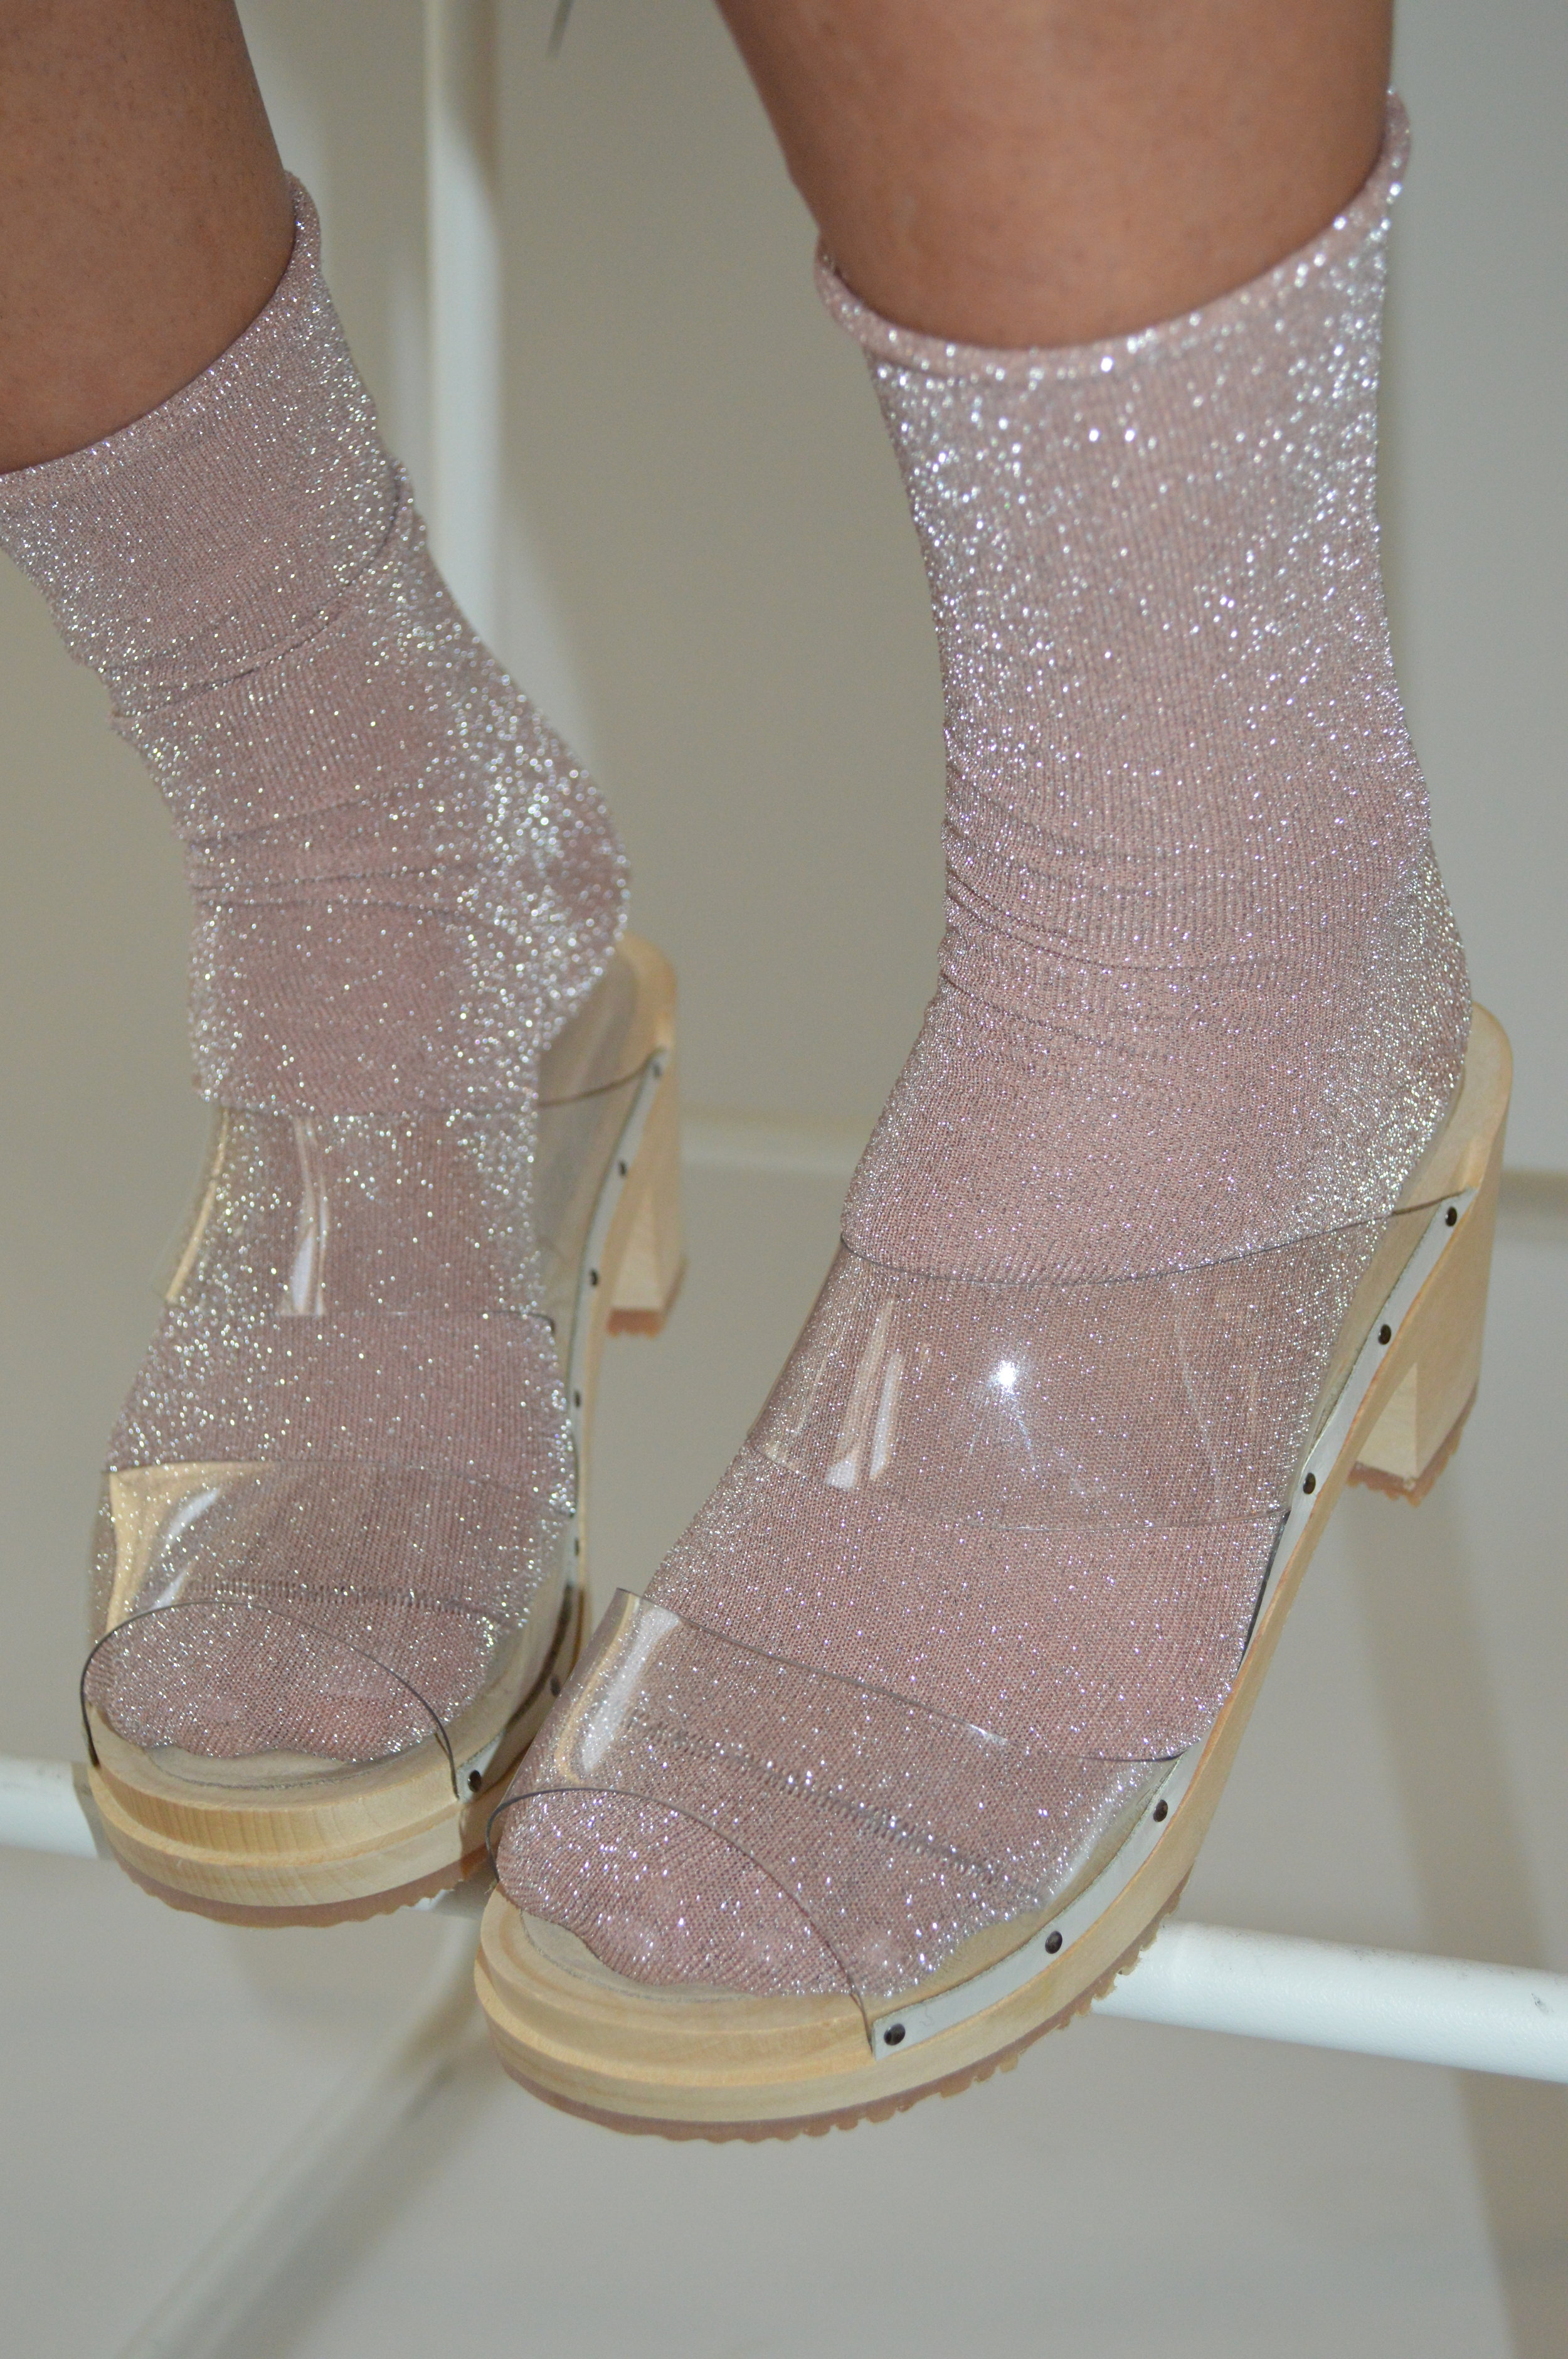 FOR YOUR IRL BFF - The Crystal Clog; imagine the nights out you could have in these... (and you know she'll let you borrow them)